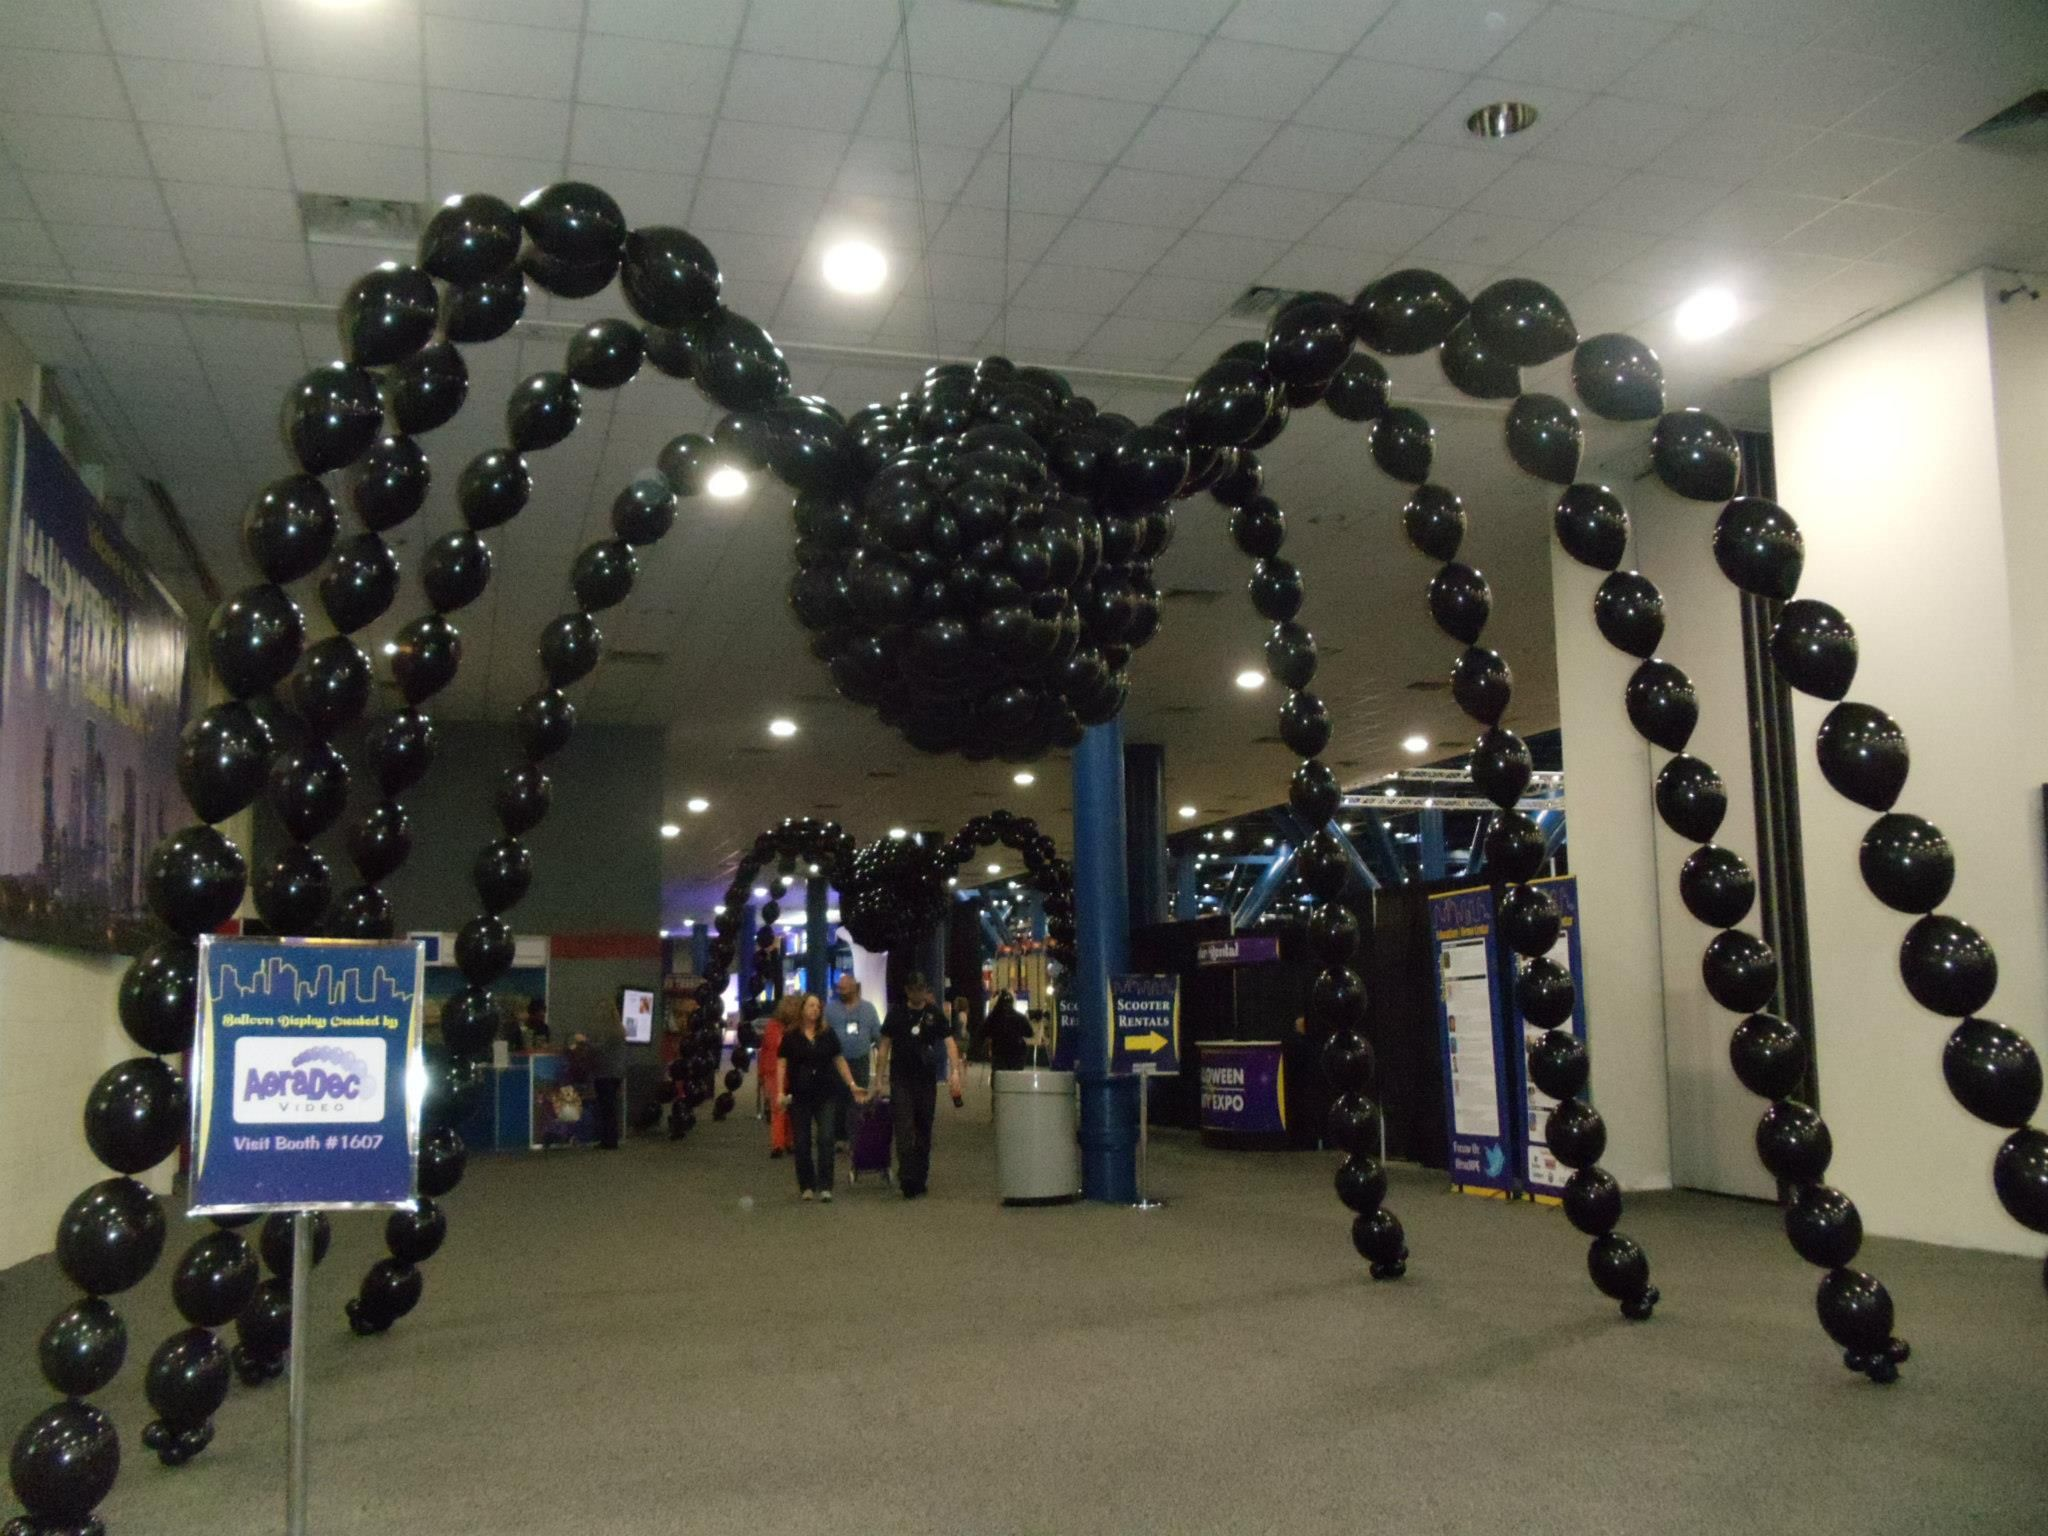 Halloween spider decorations - Giant Link O Loon Spider At Halloween Party Expo 2013 By Steve